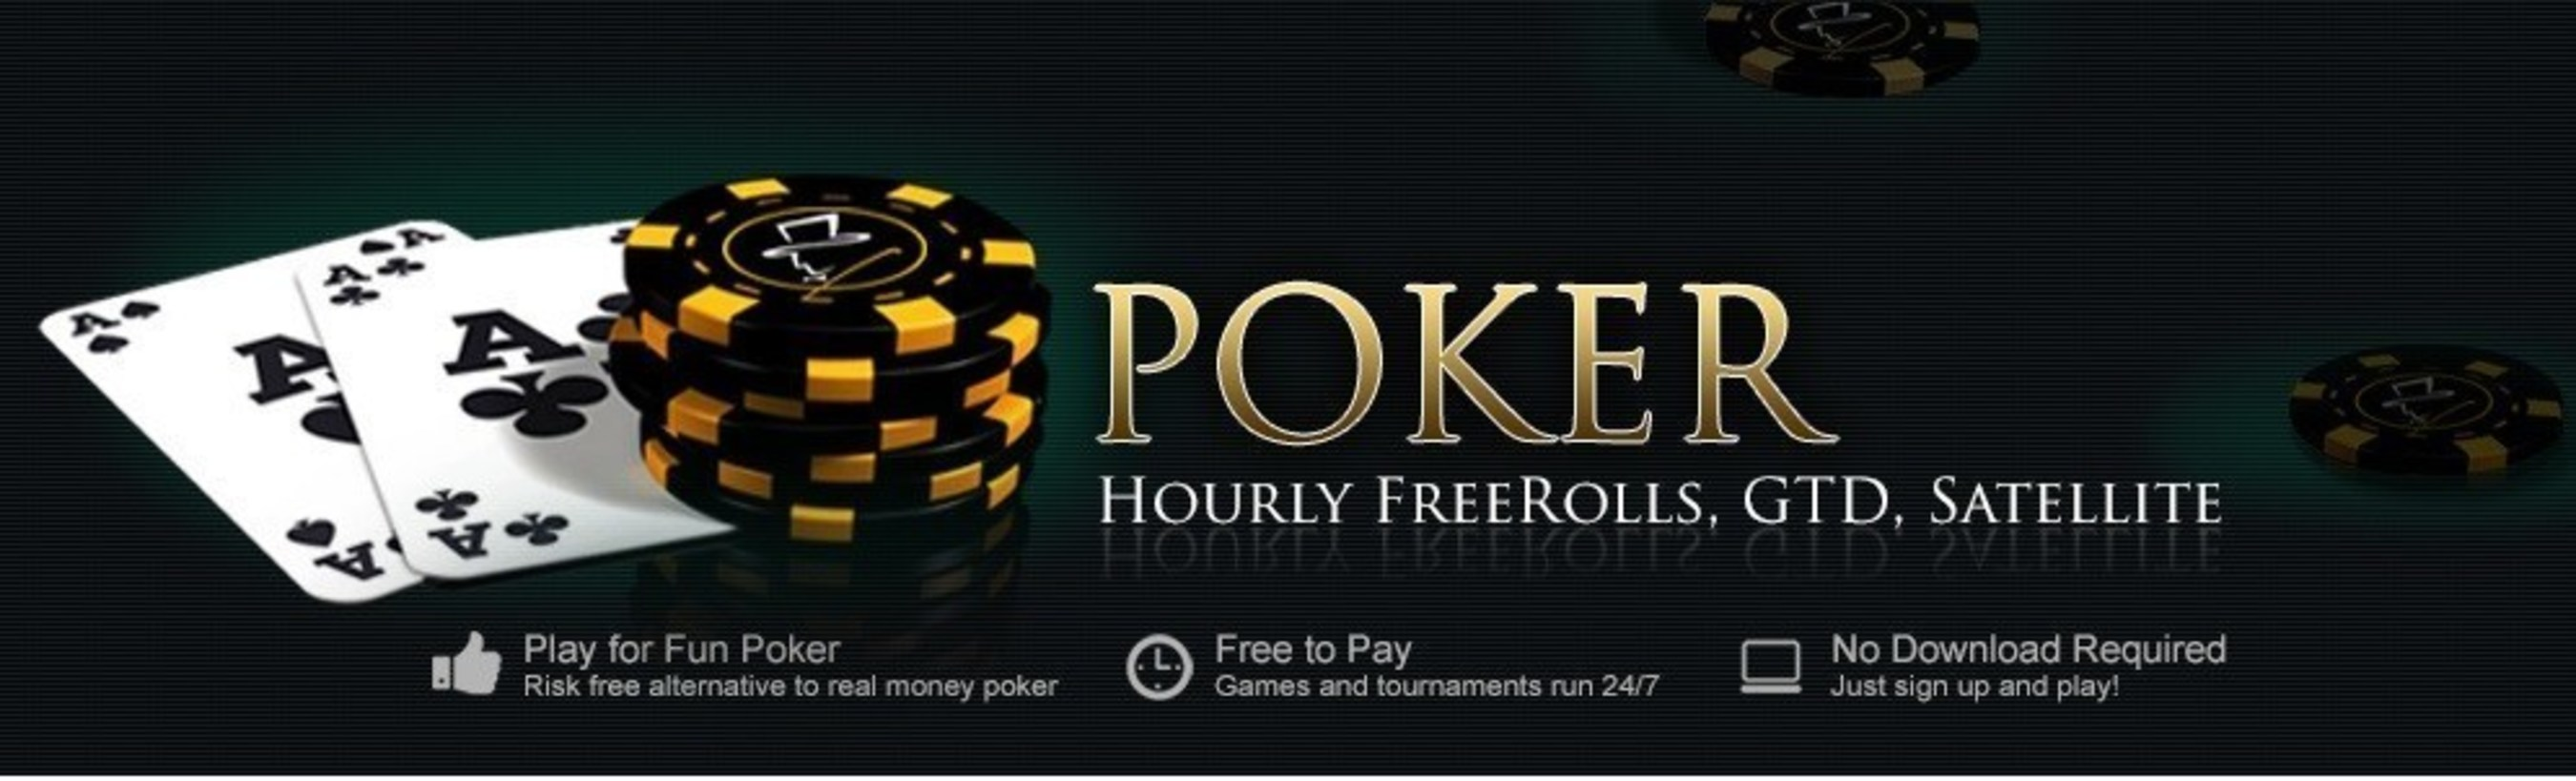 Best website for playing poker with friends